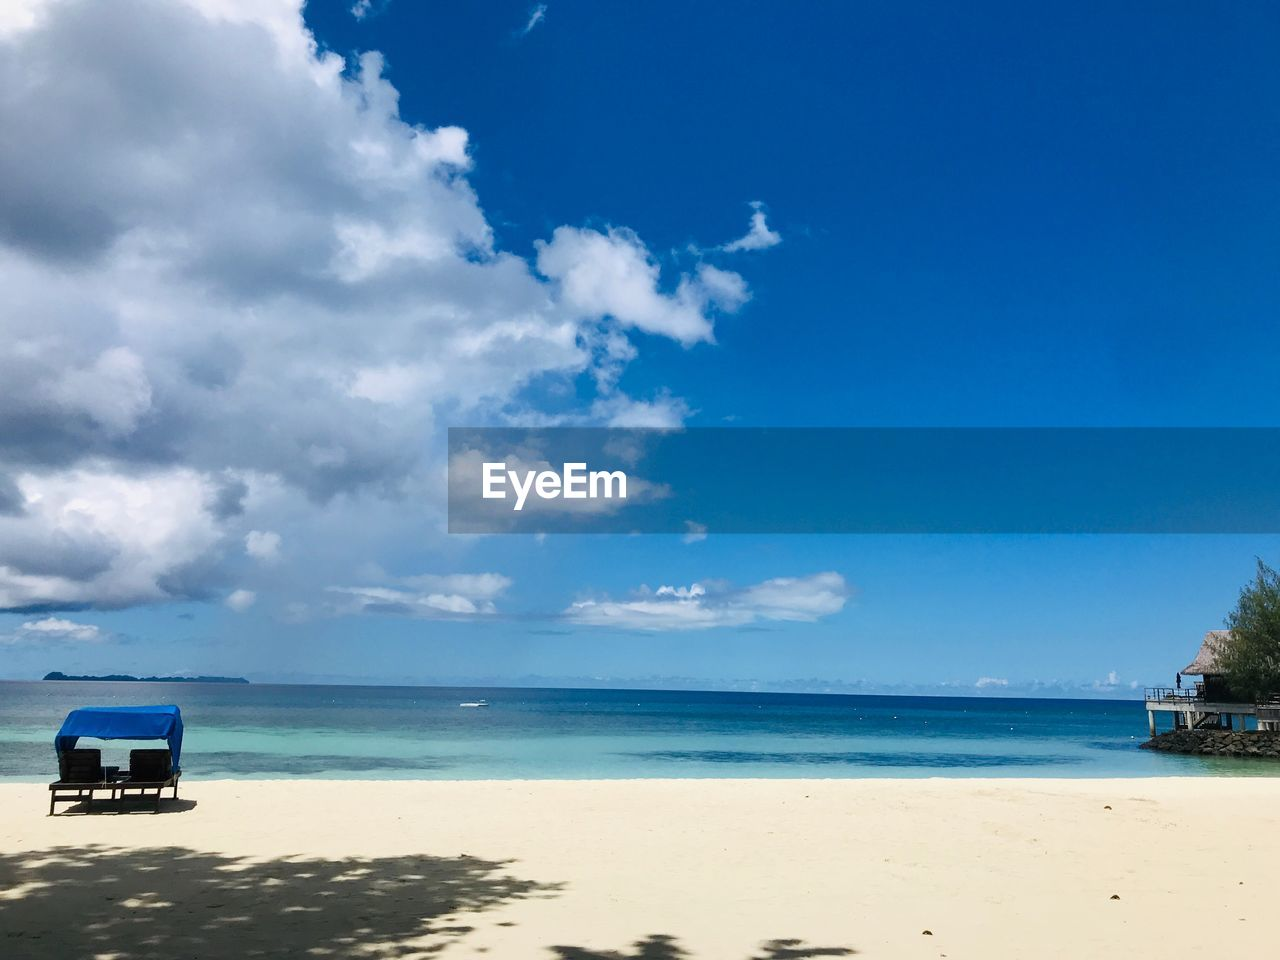 sea, sky, water, beach, land, cloud - sky, horizon, horizon over water, scenics - nature, beauty in nature, nature, tranquil scene, tranquility, day, sand, blue, transportation, outdoors, no people